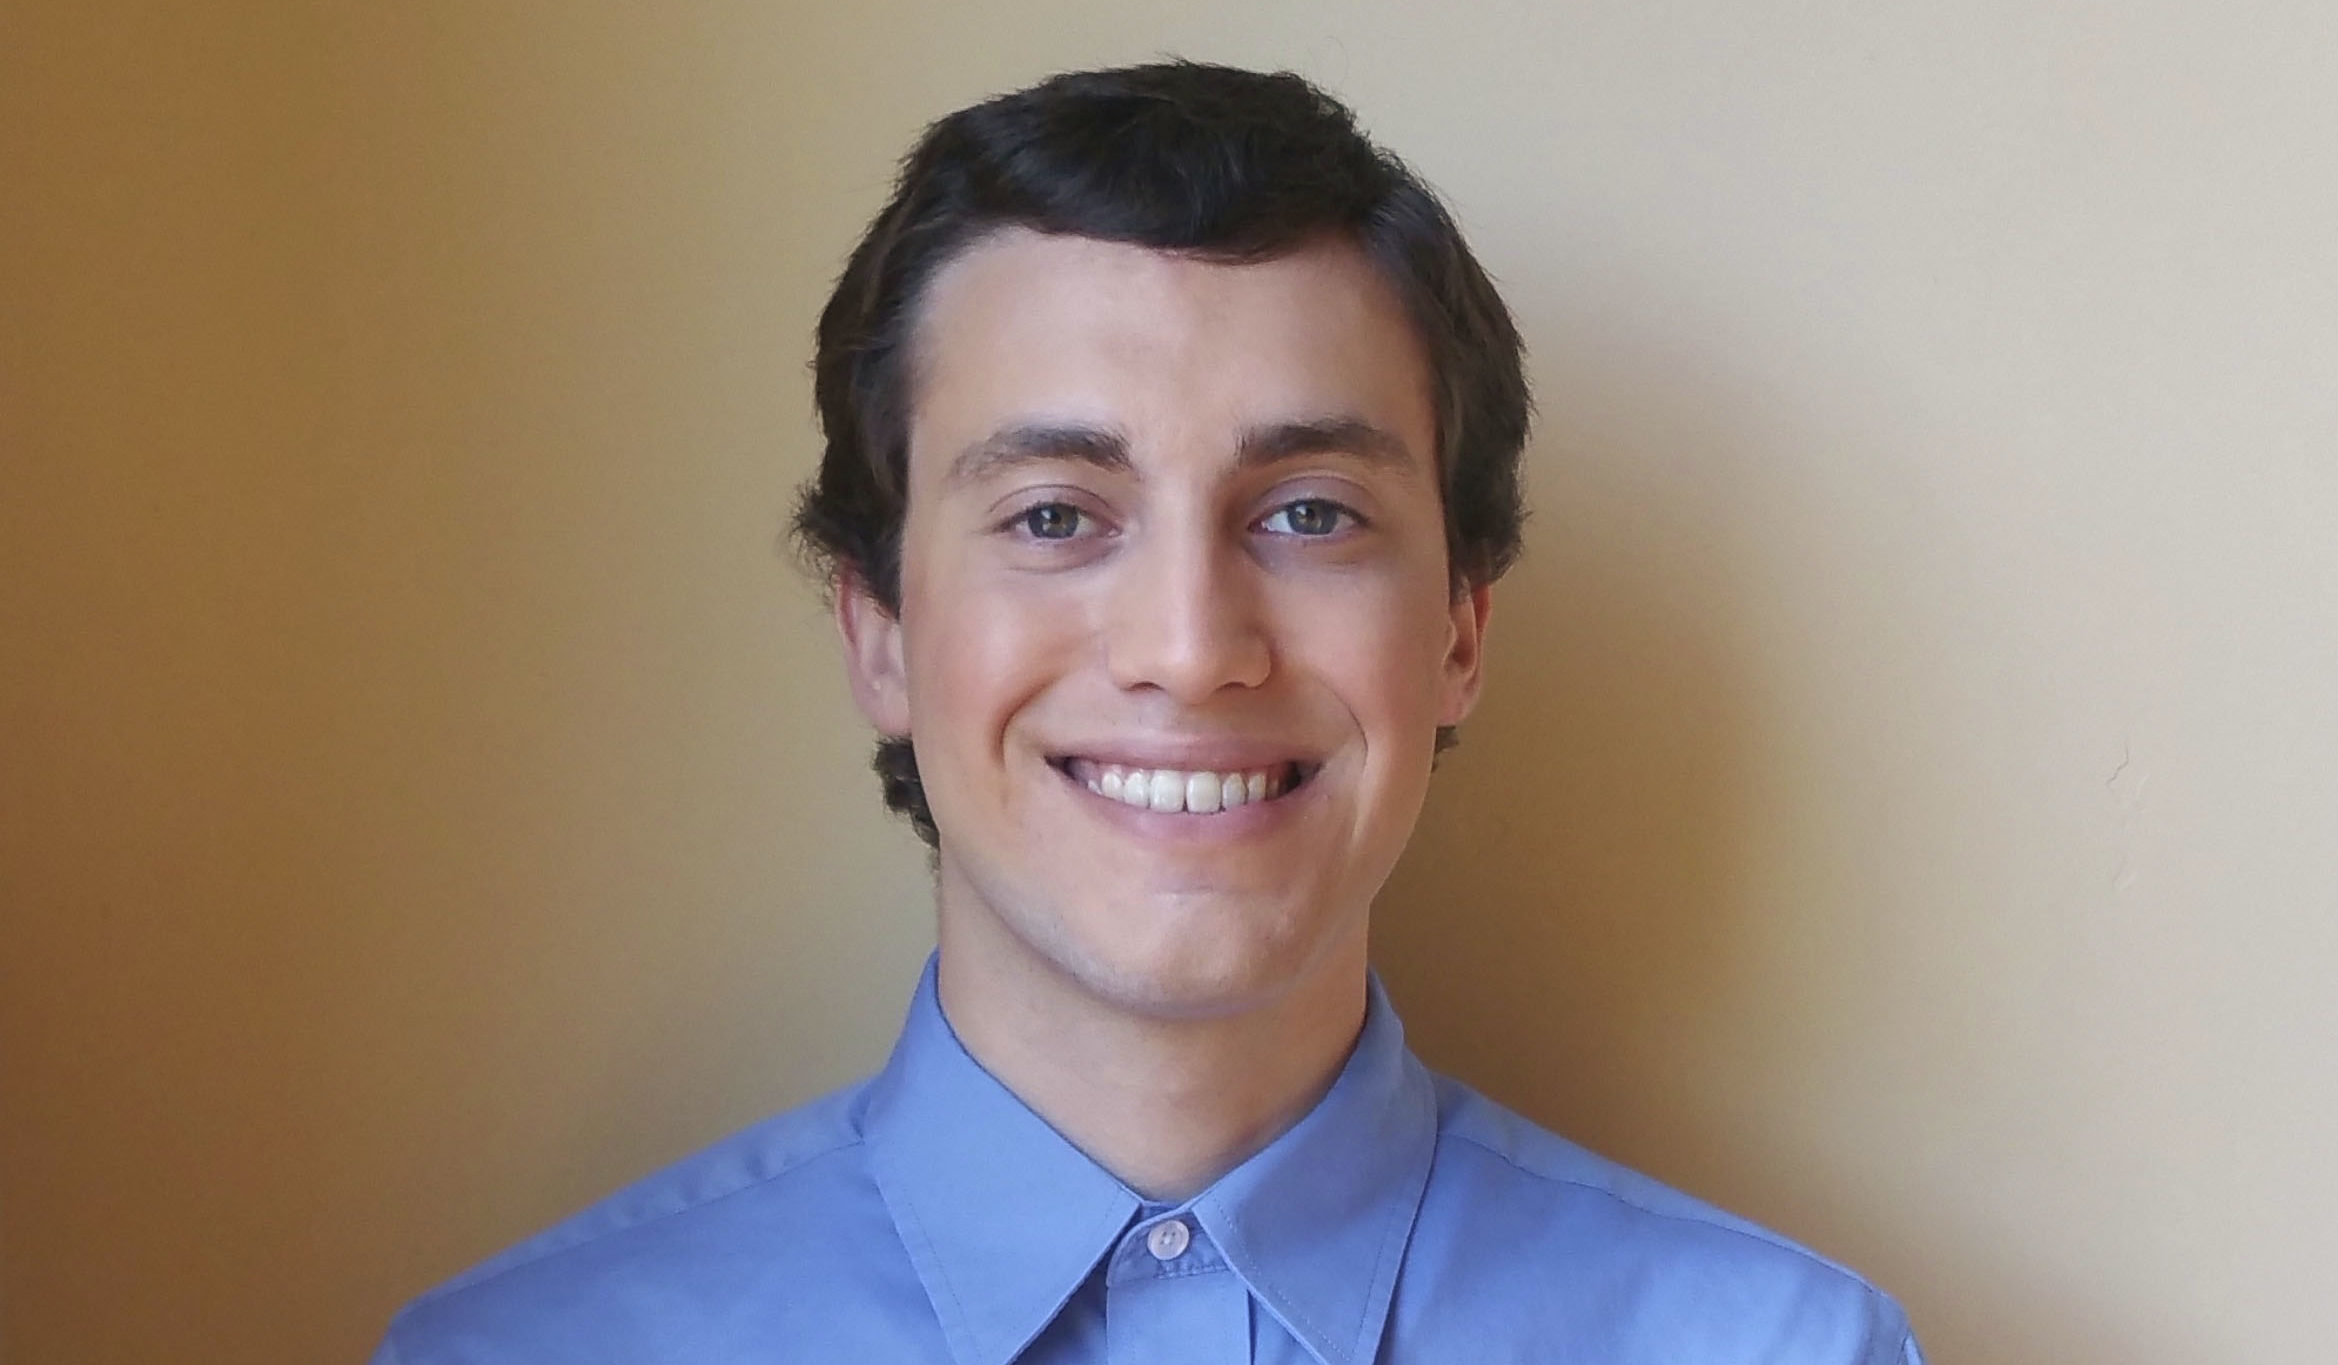 Elias Rosenthal started a health website for teens.